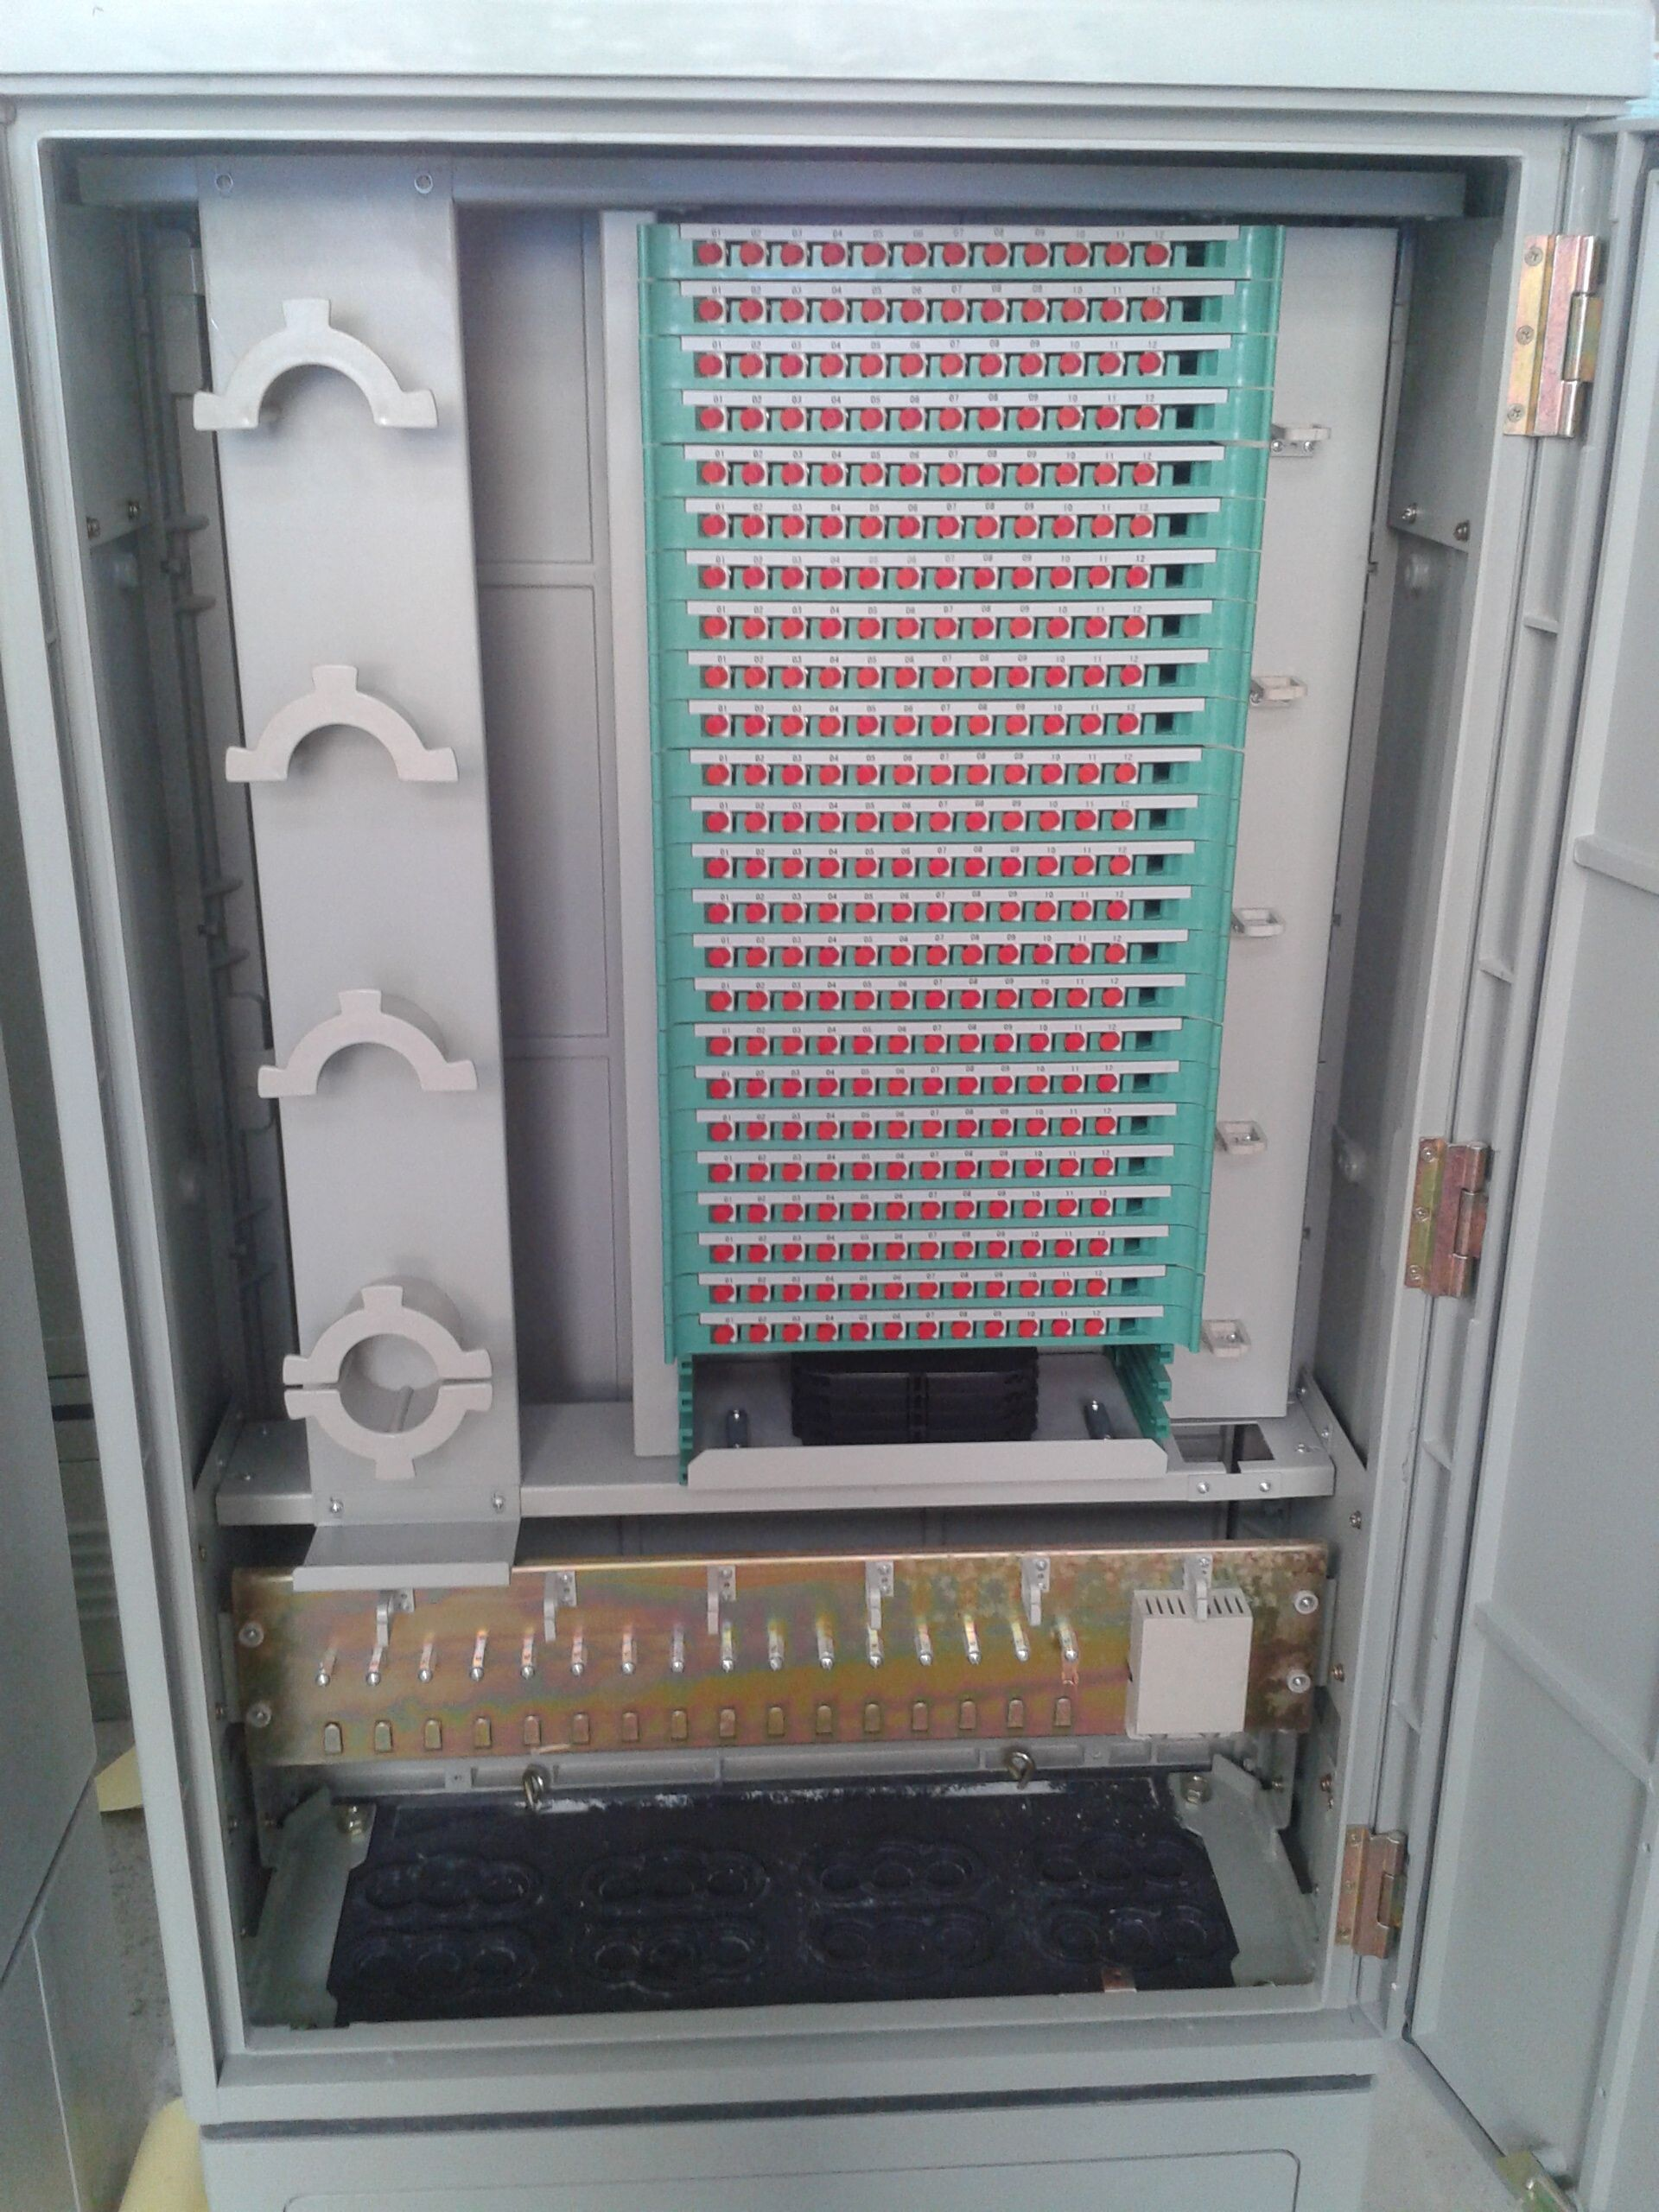 288 cores Optical cable cross connection cabinet